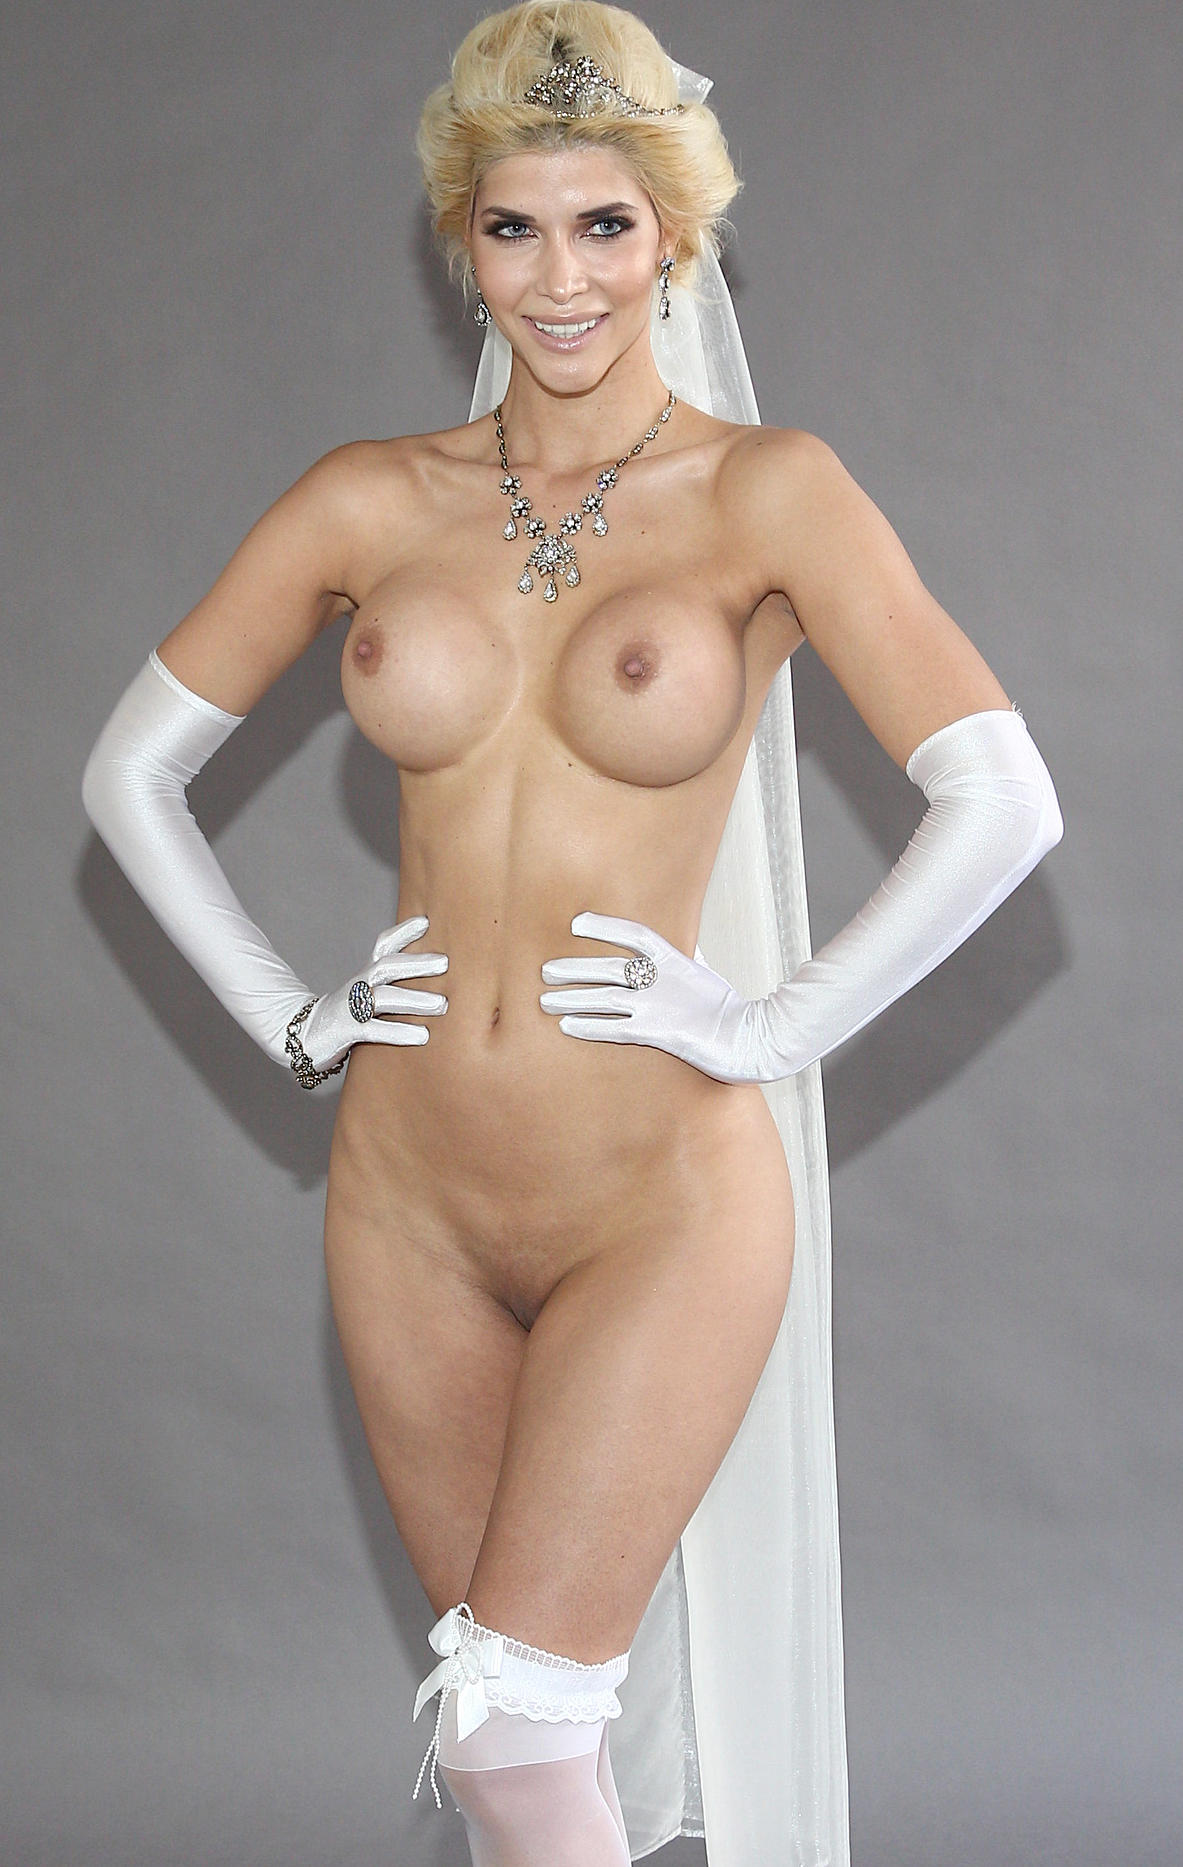 And nude micaela schaefer naked congratulate, you